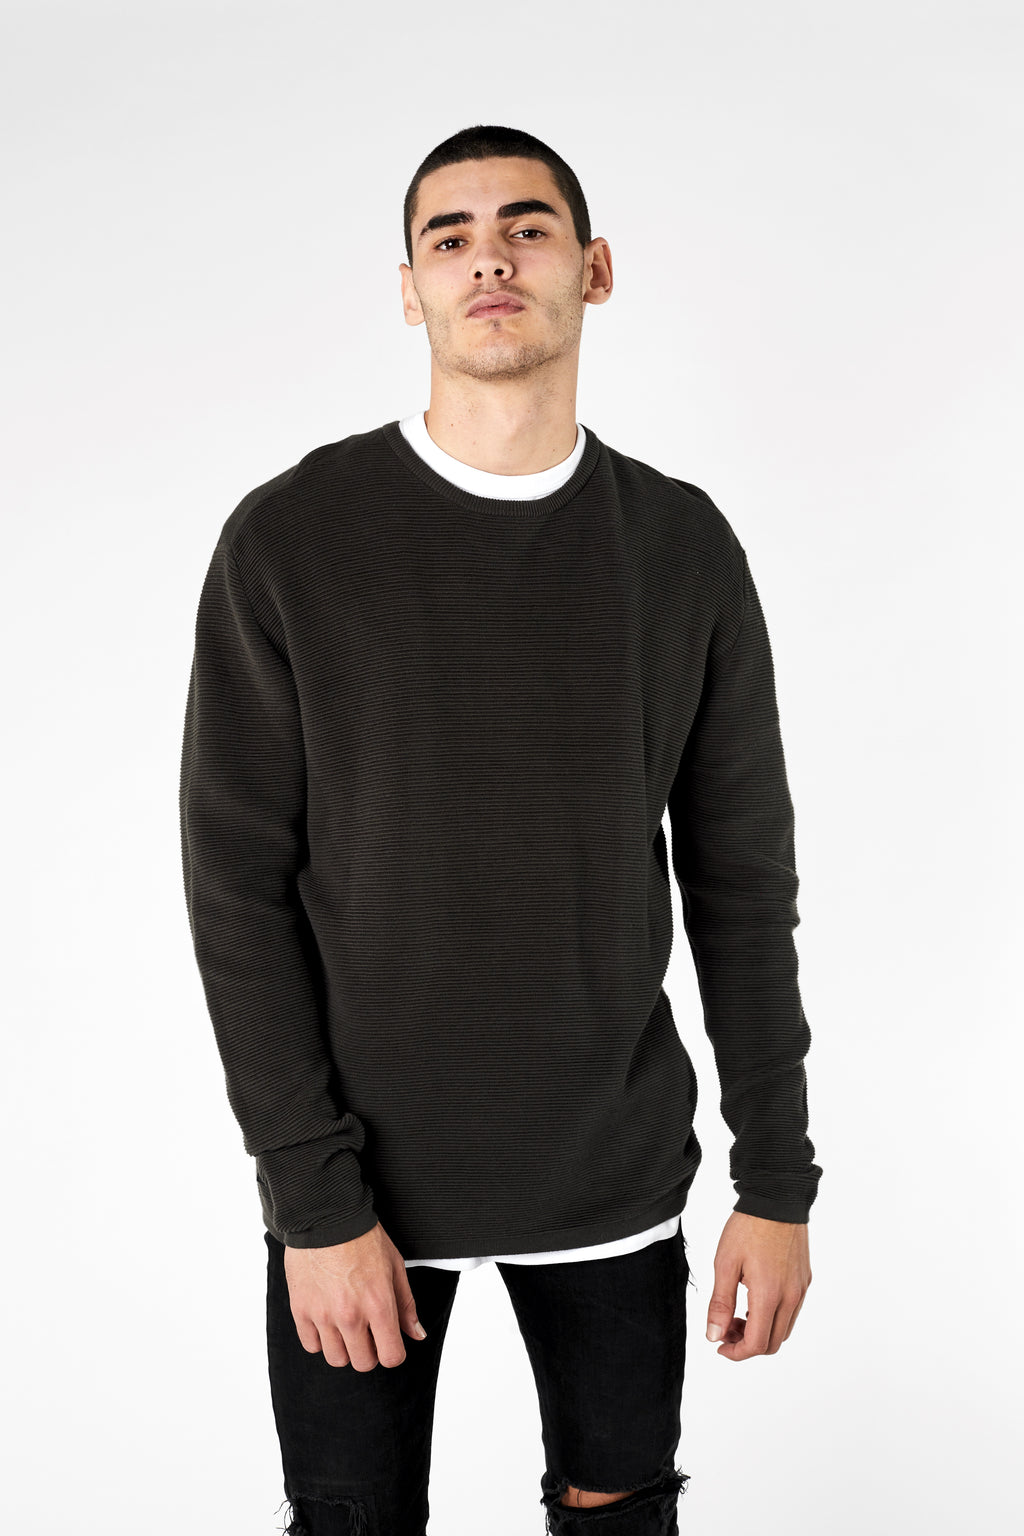 The Bonita Knit - Evergreen - Roler Clothing